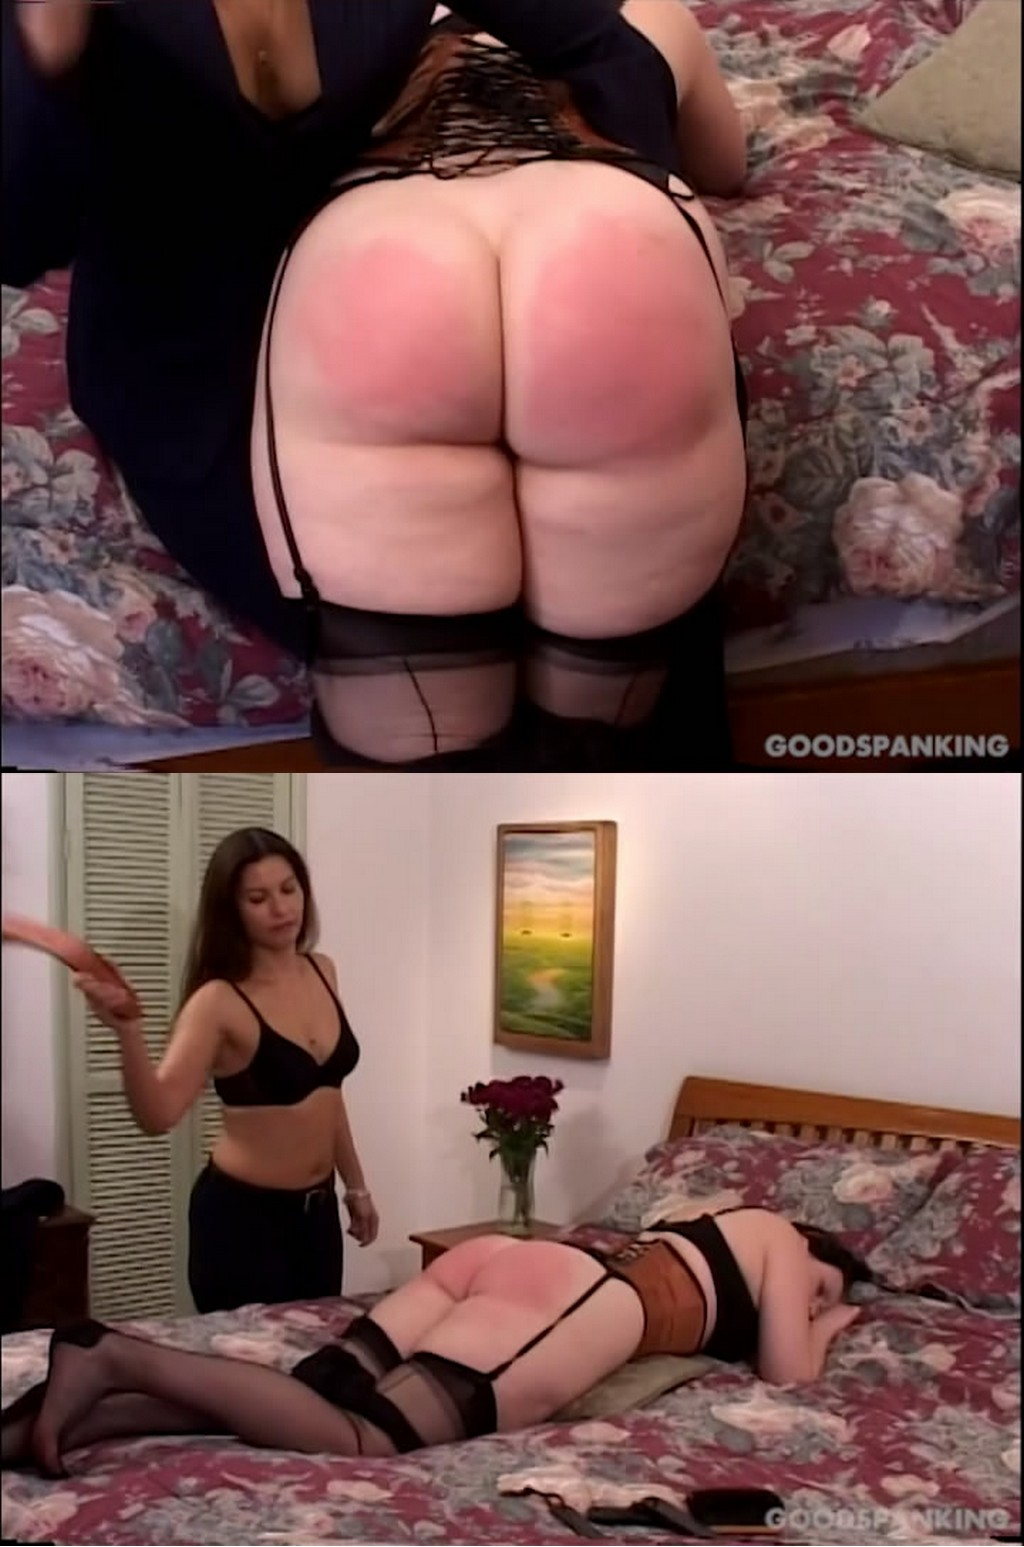 Good Spanking – MP4/SD – Chelsea Pfeiffer, Julie Simone – Chelsea Spanks: Julie (Release date: OCT. 06, 2020)